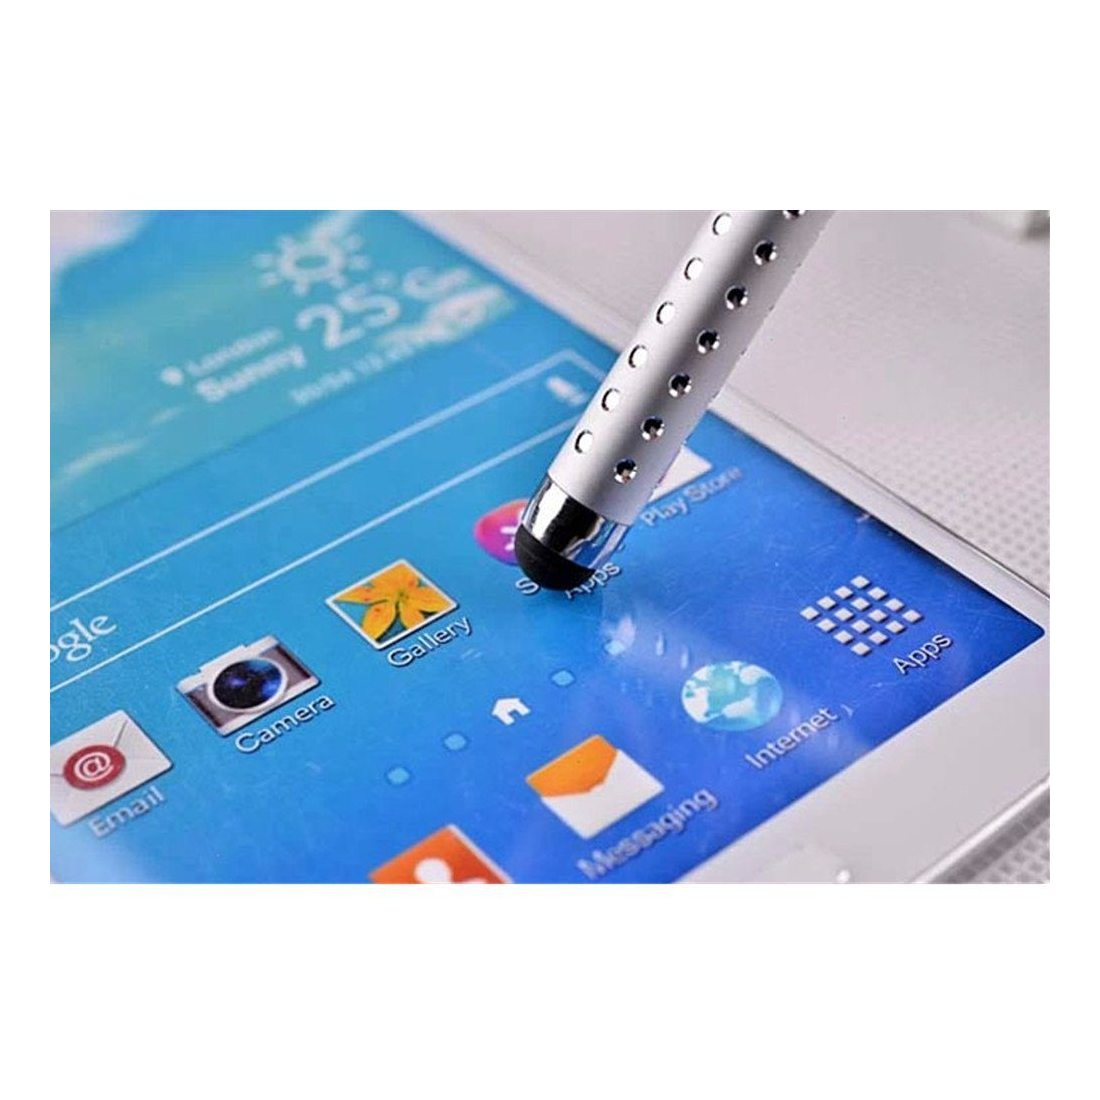 TRIXES 10 X Crayons Stylus Crystal rétractables pour iPhone iPad Tablette Samsung